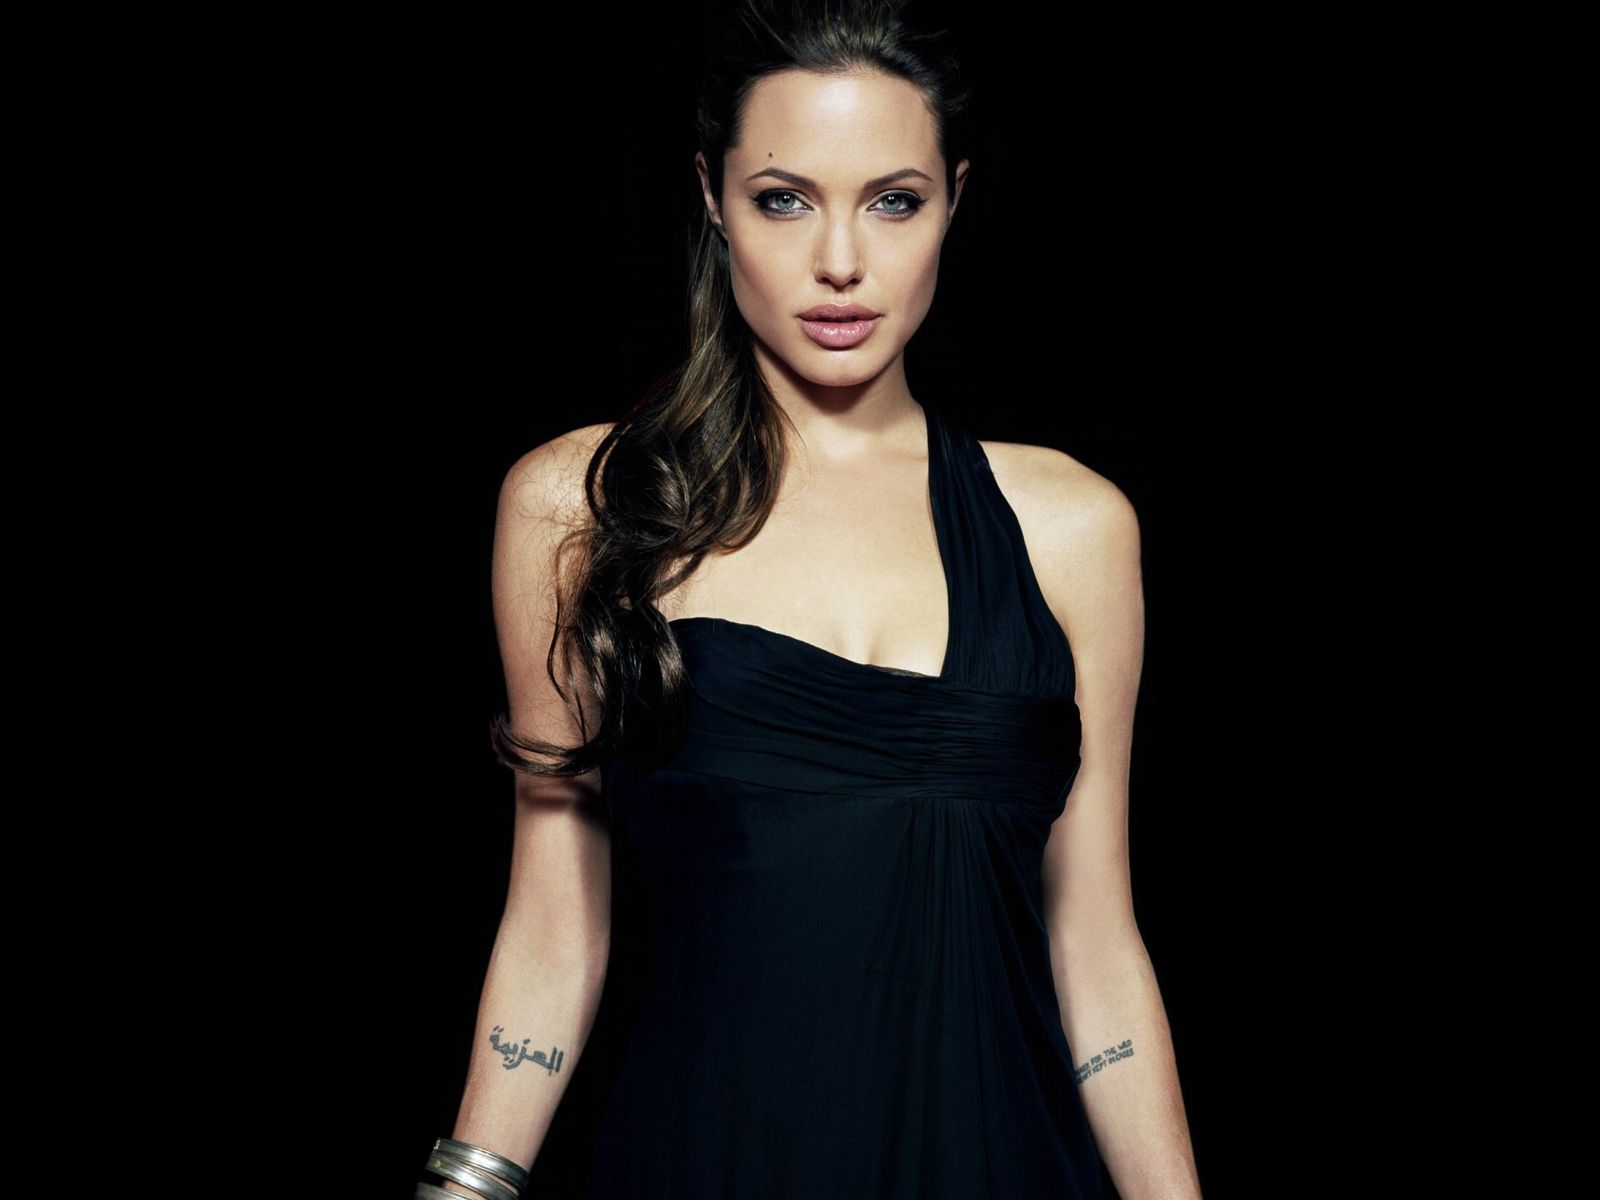 Angelina Jolie's Arabic Tattoo